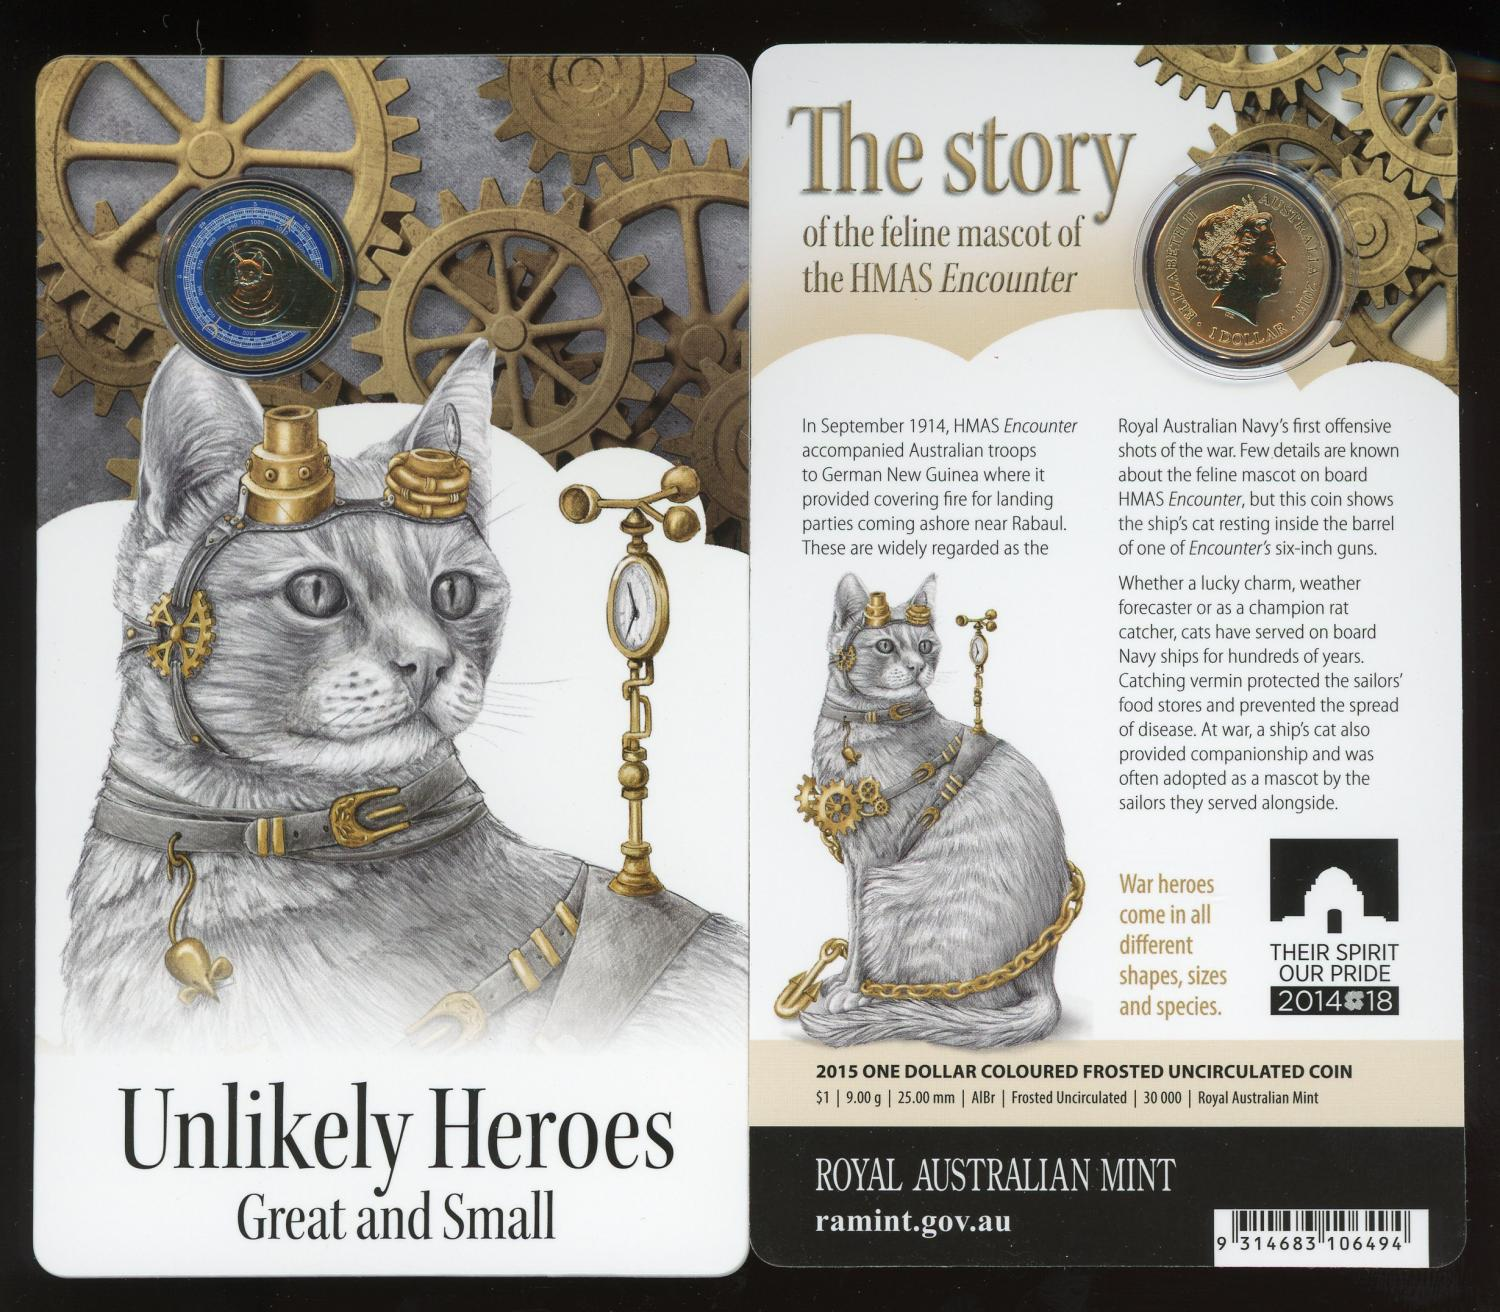 Thumbnail for 2015 Unlikely Heroes - Feline Mascot of the HMAS Encounter